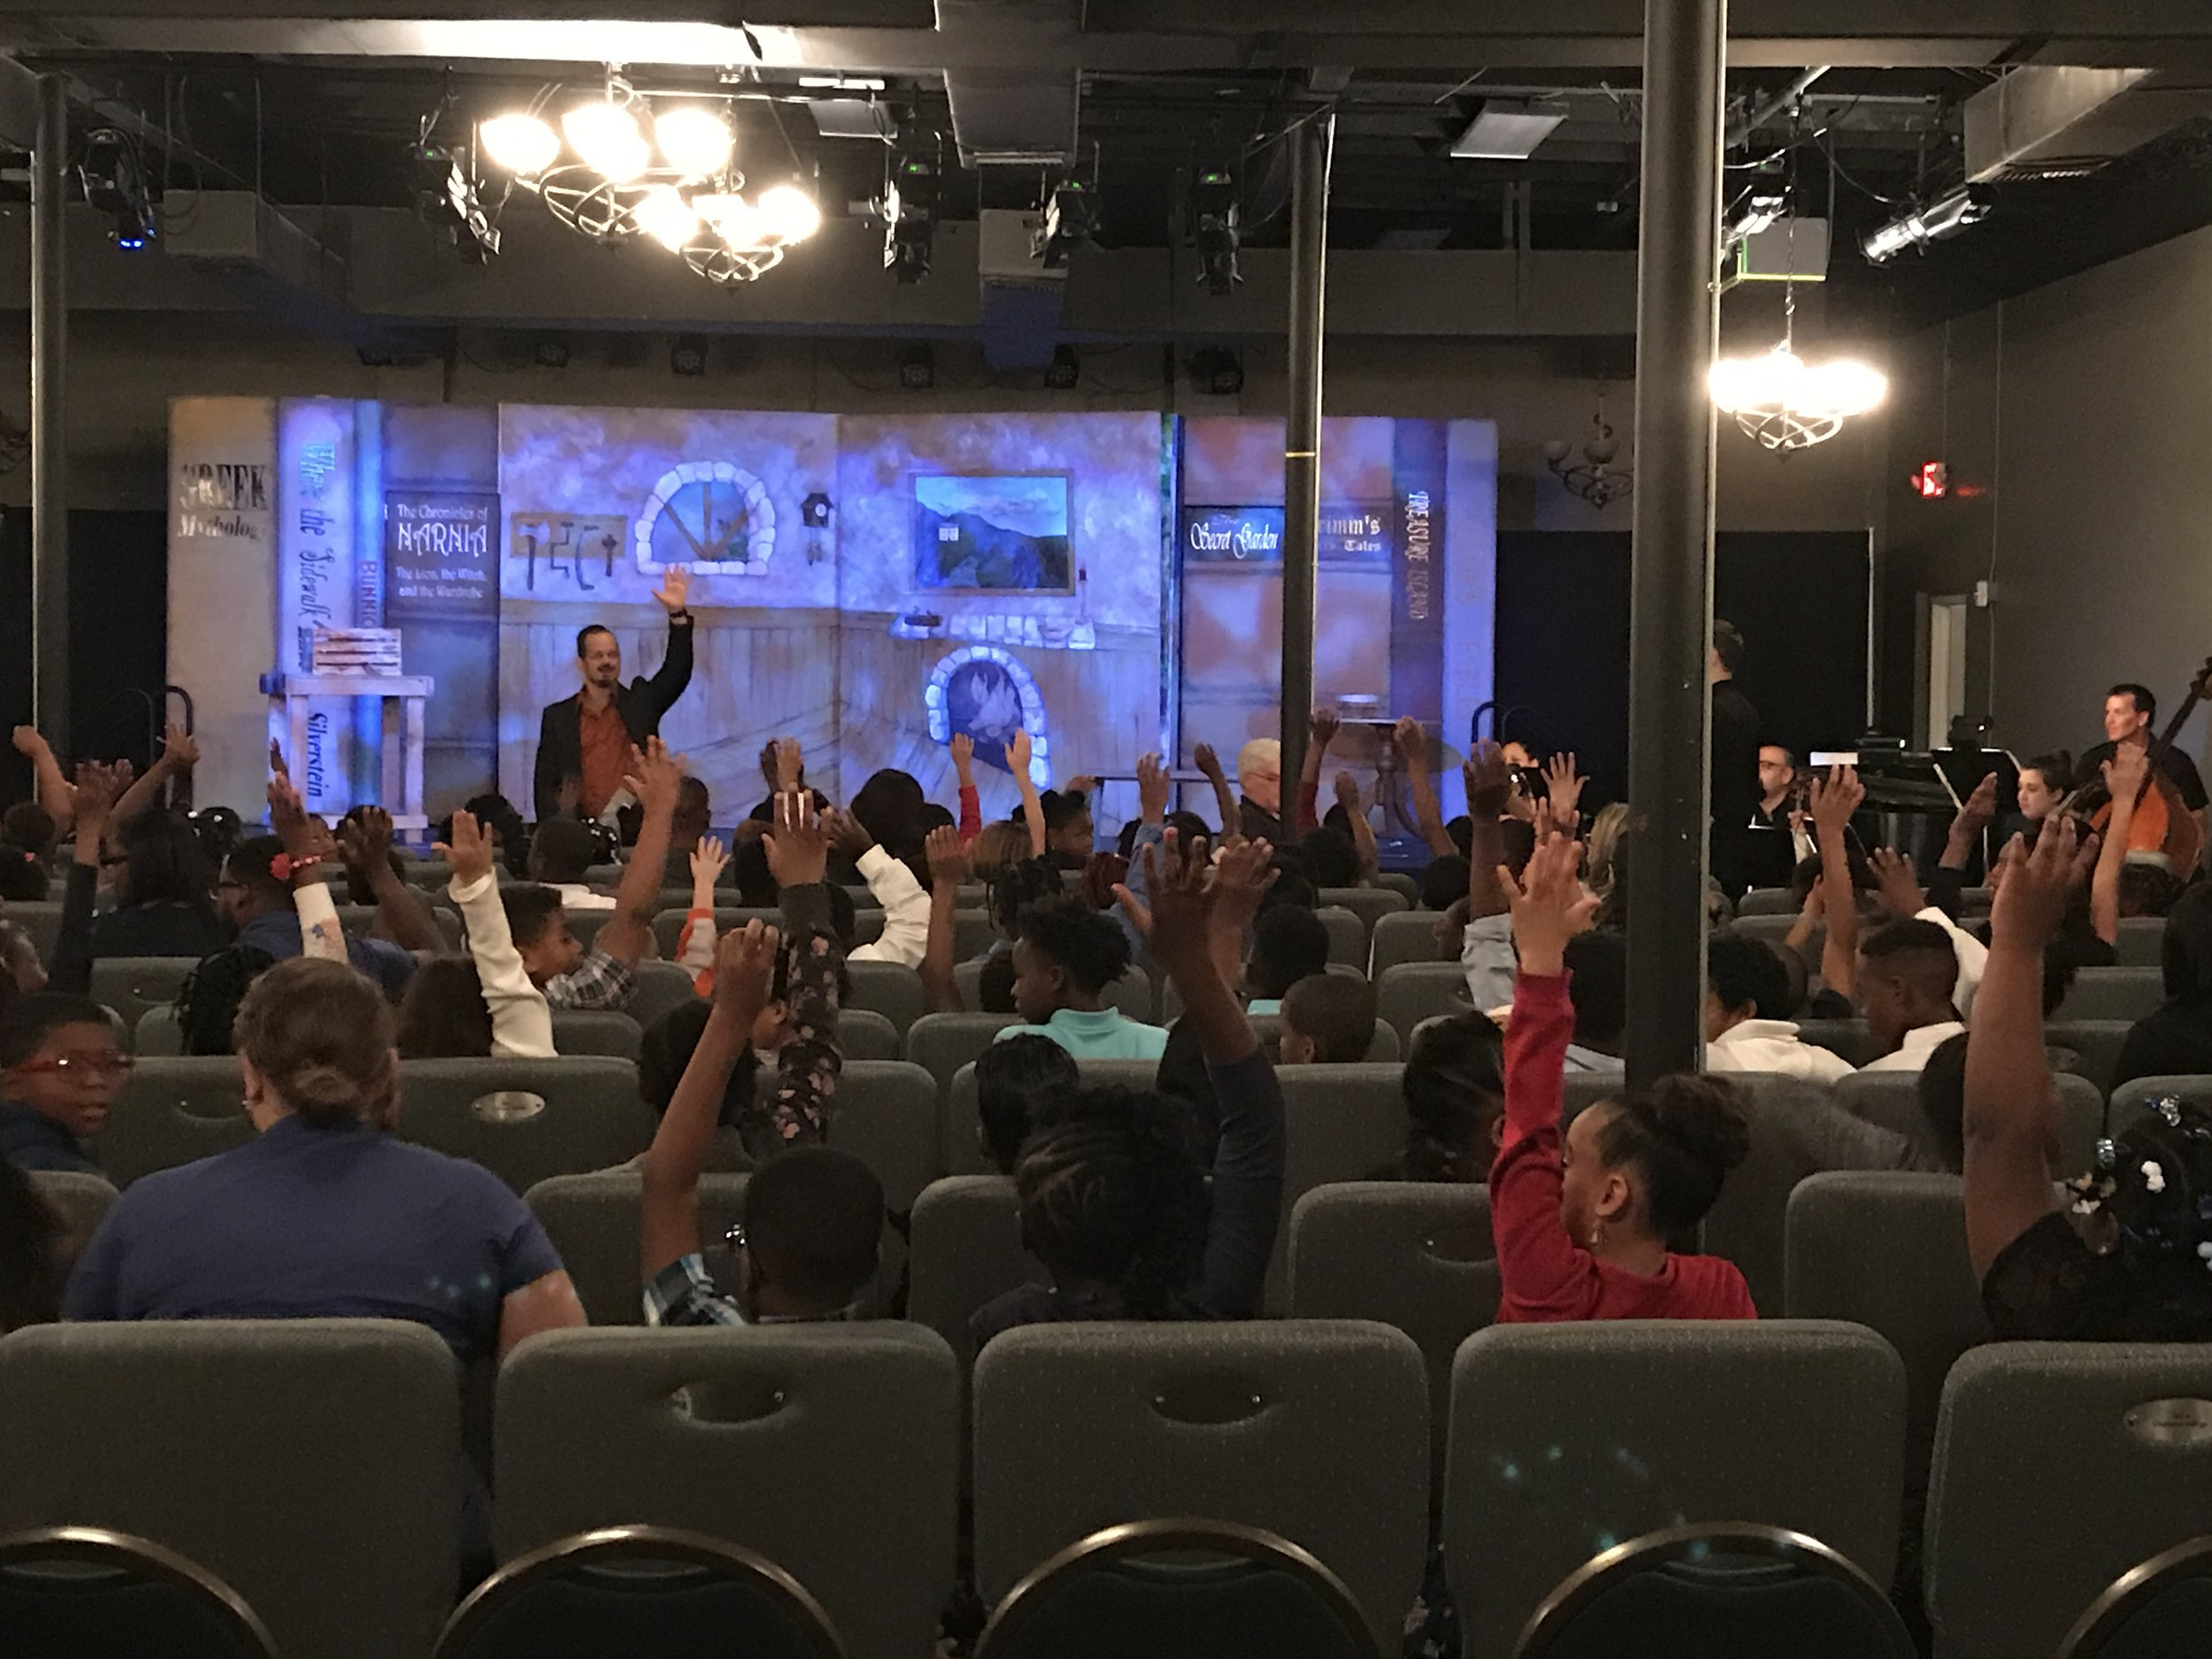 Maestro Sforzini asks kids to raise hands if this is their very first opera. 95% say yes!